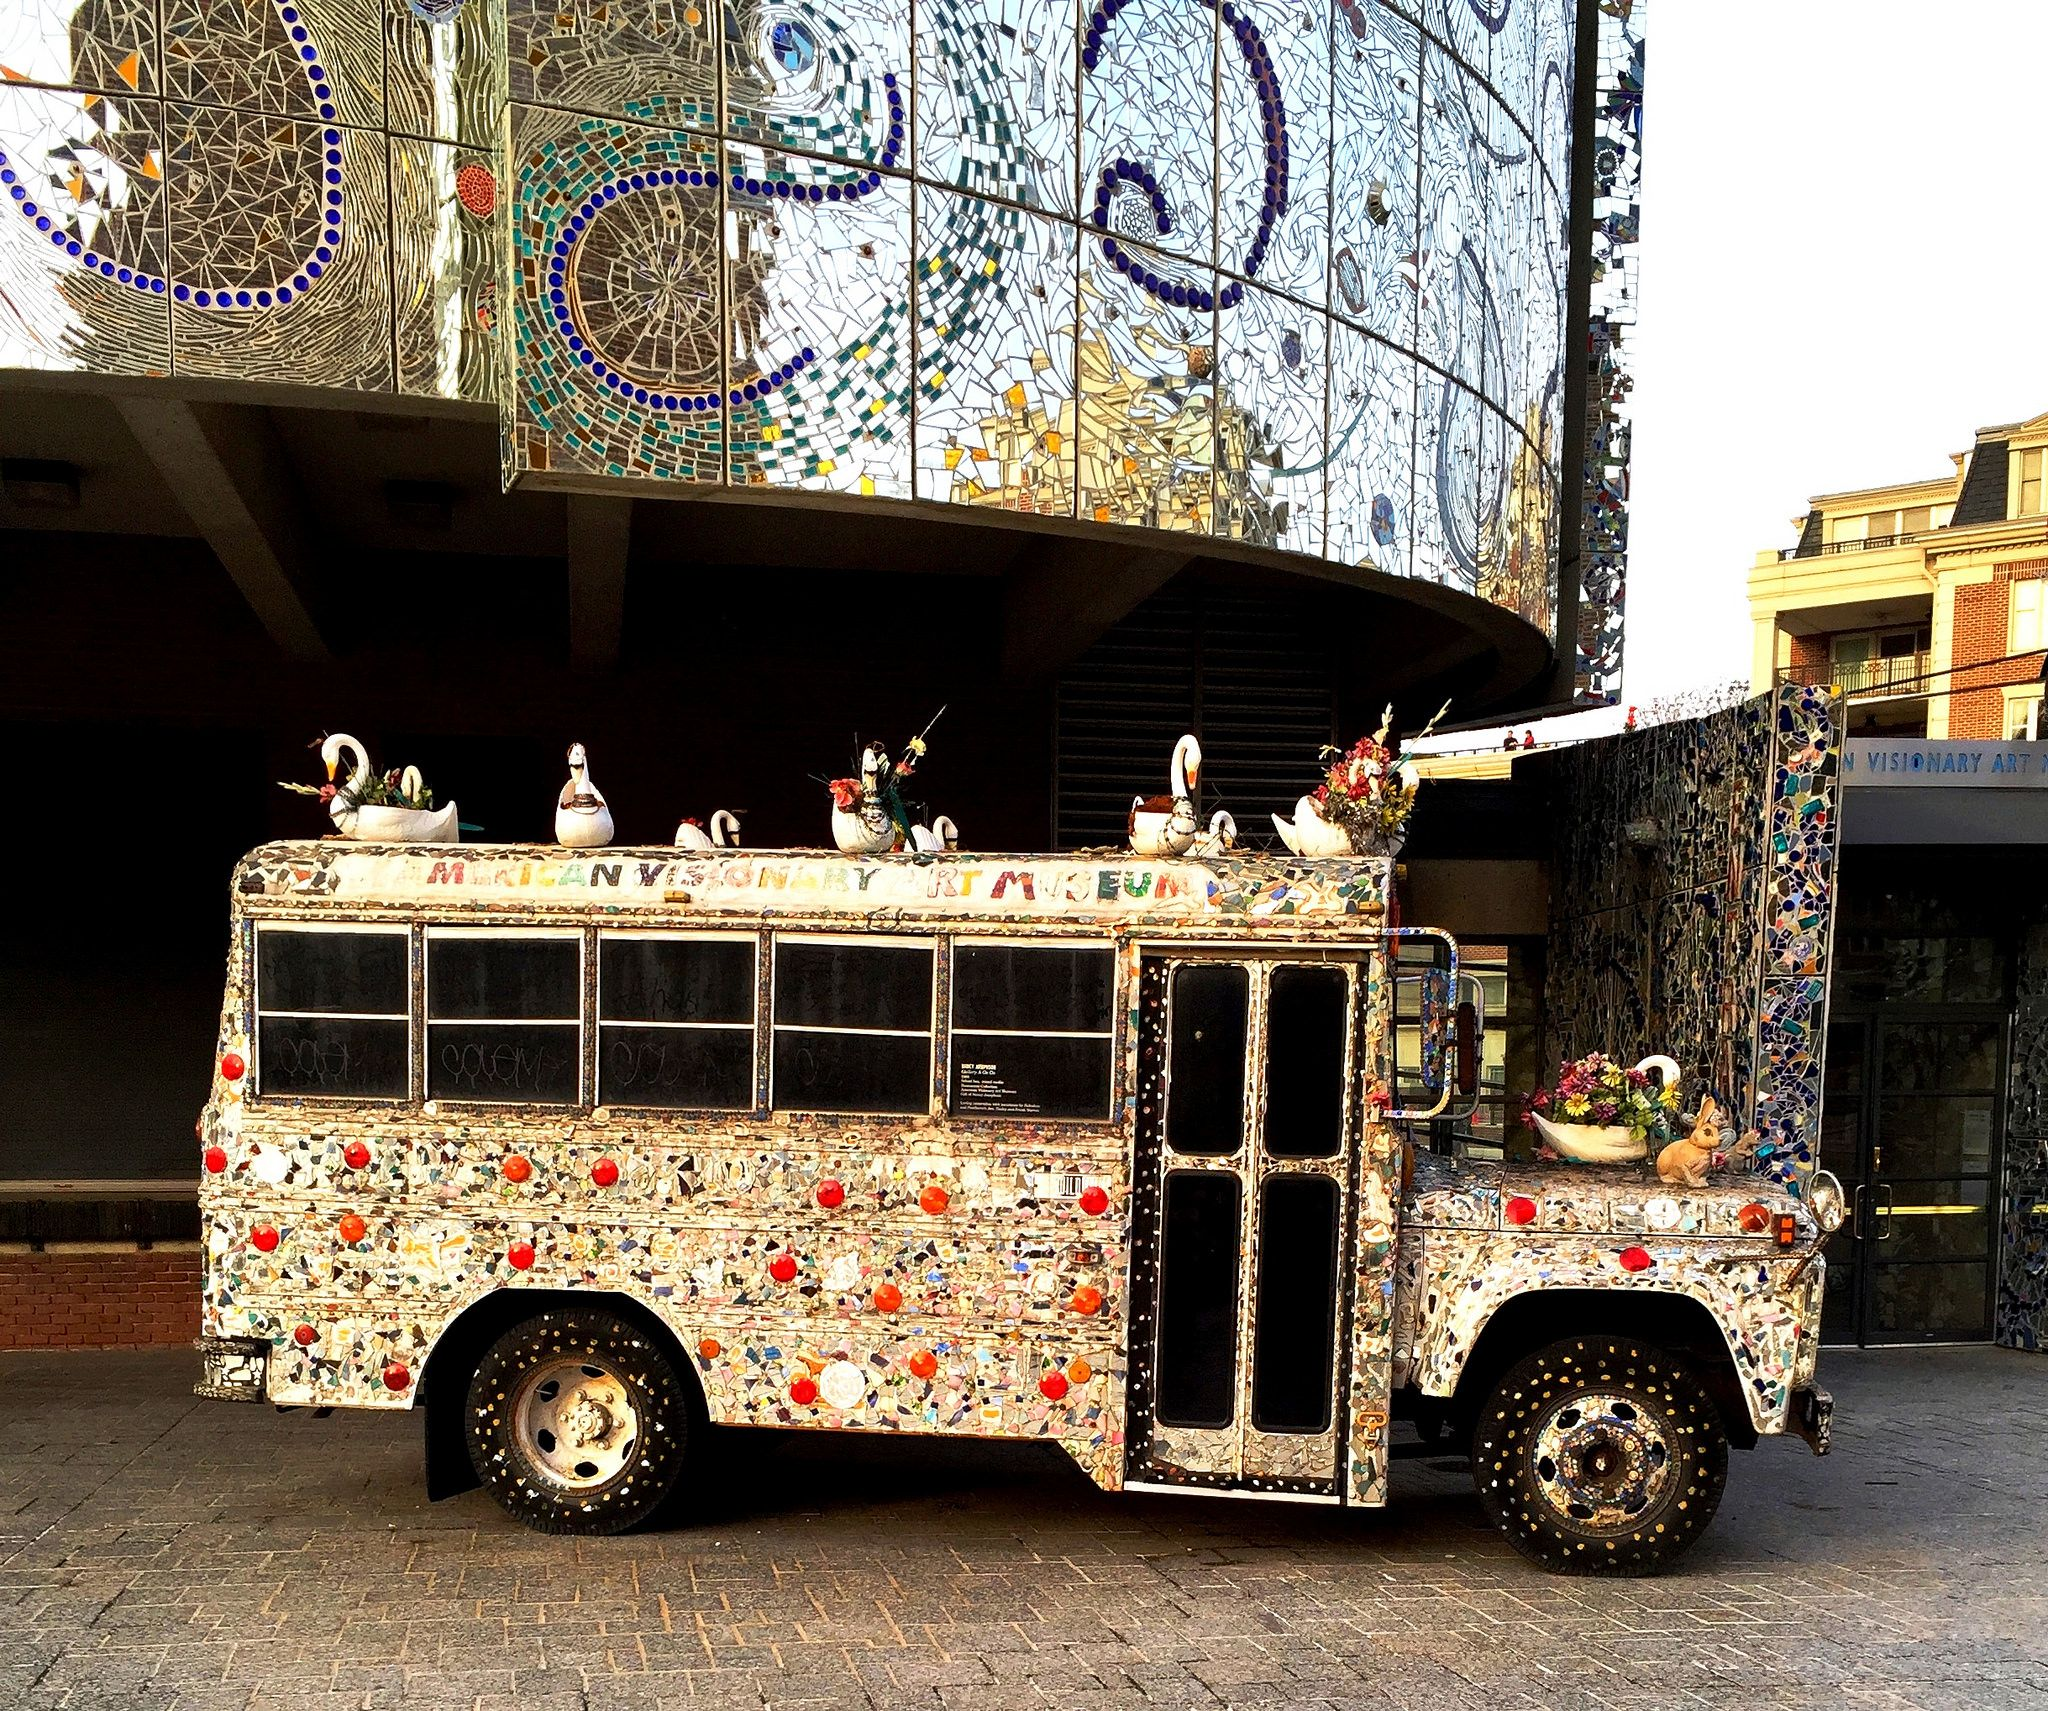 The American Visionary Art Museum In Baltimore Maryland mm ...